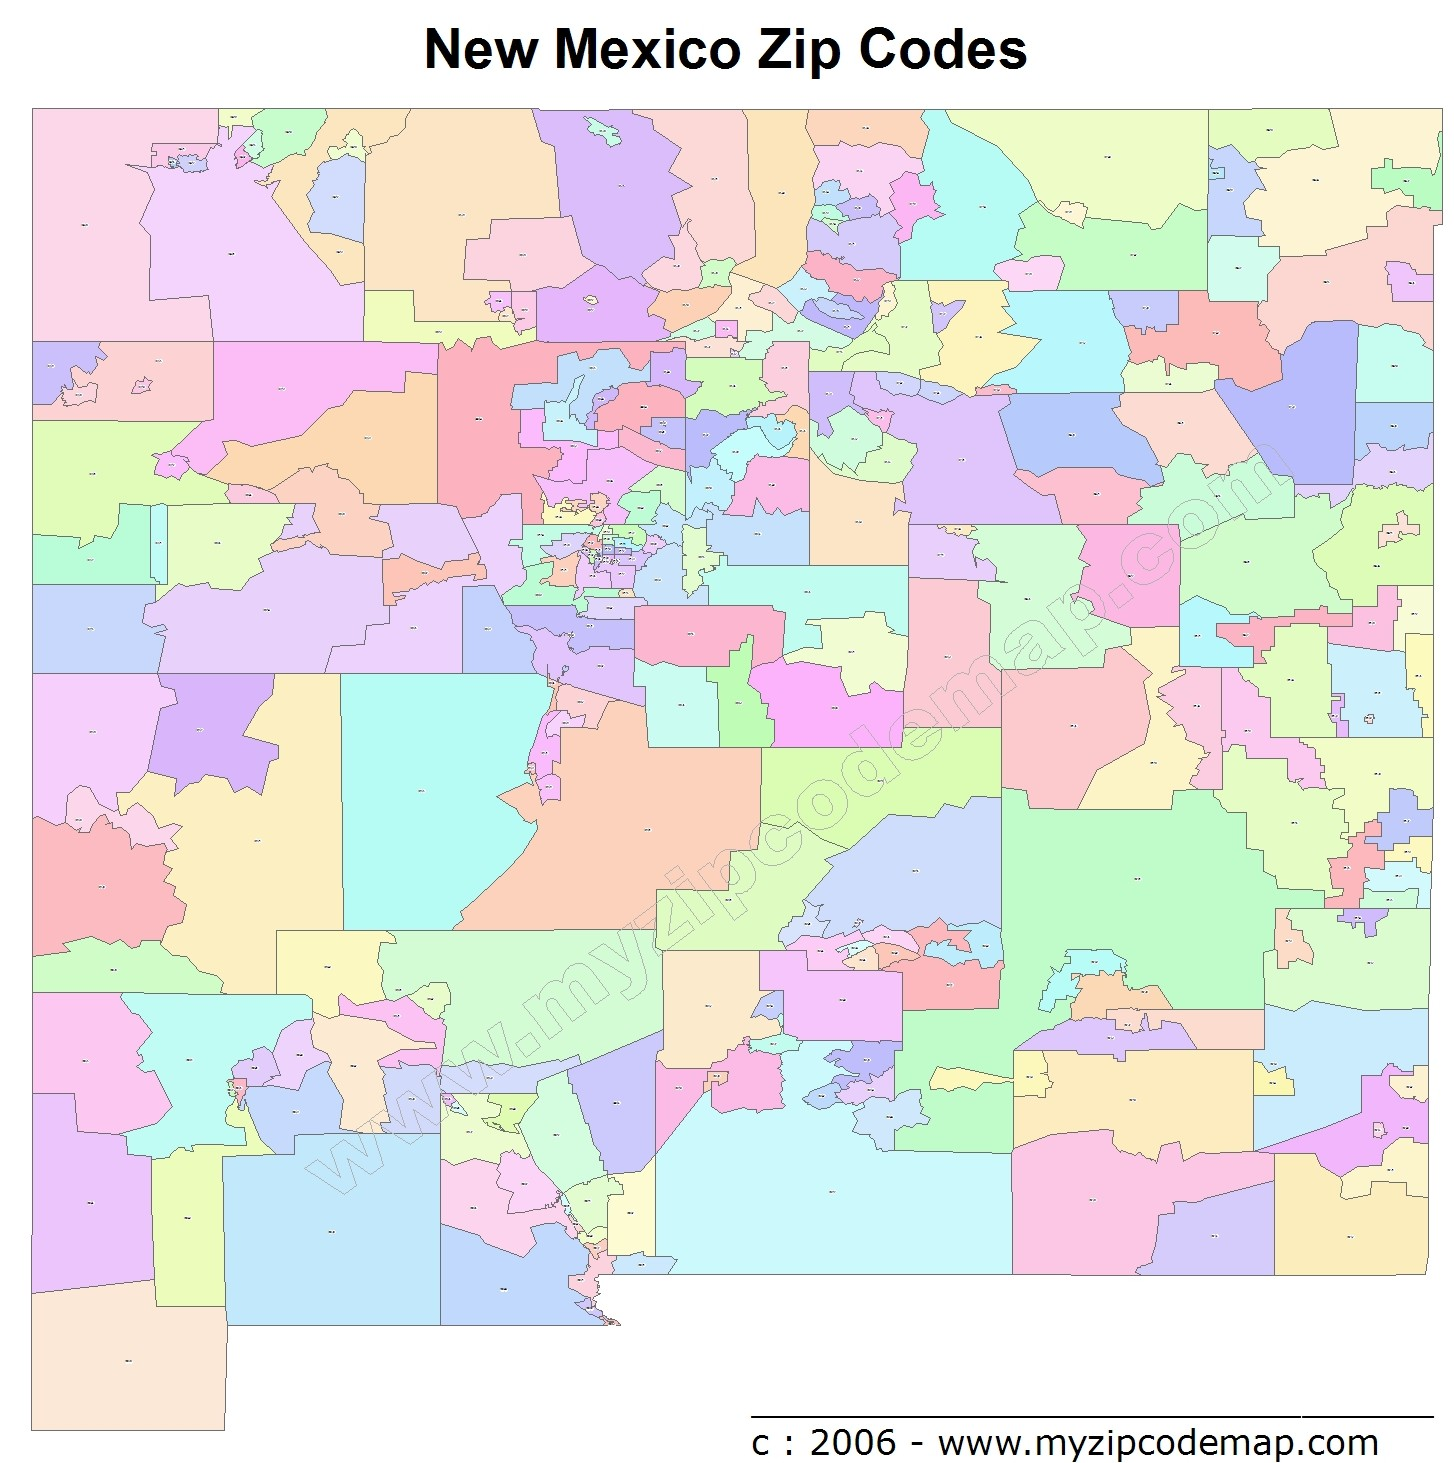 New Mexico (NM) Zip Code Map